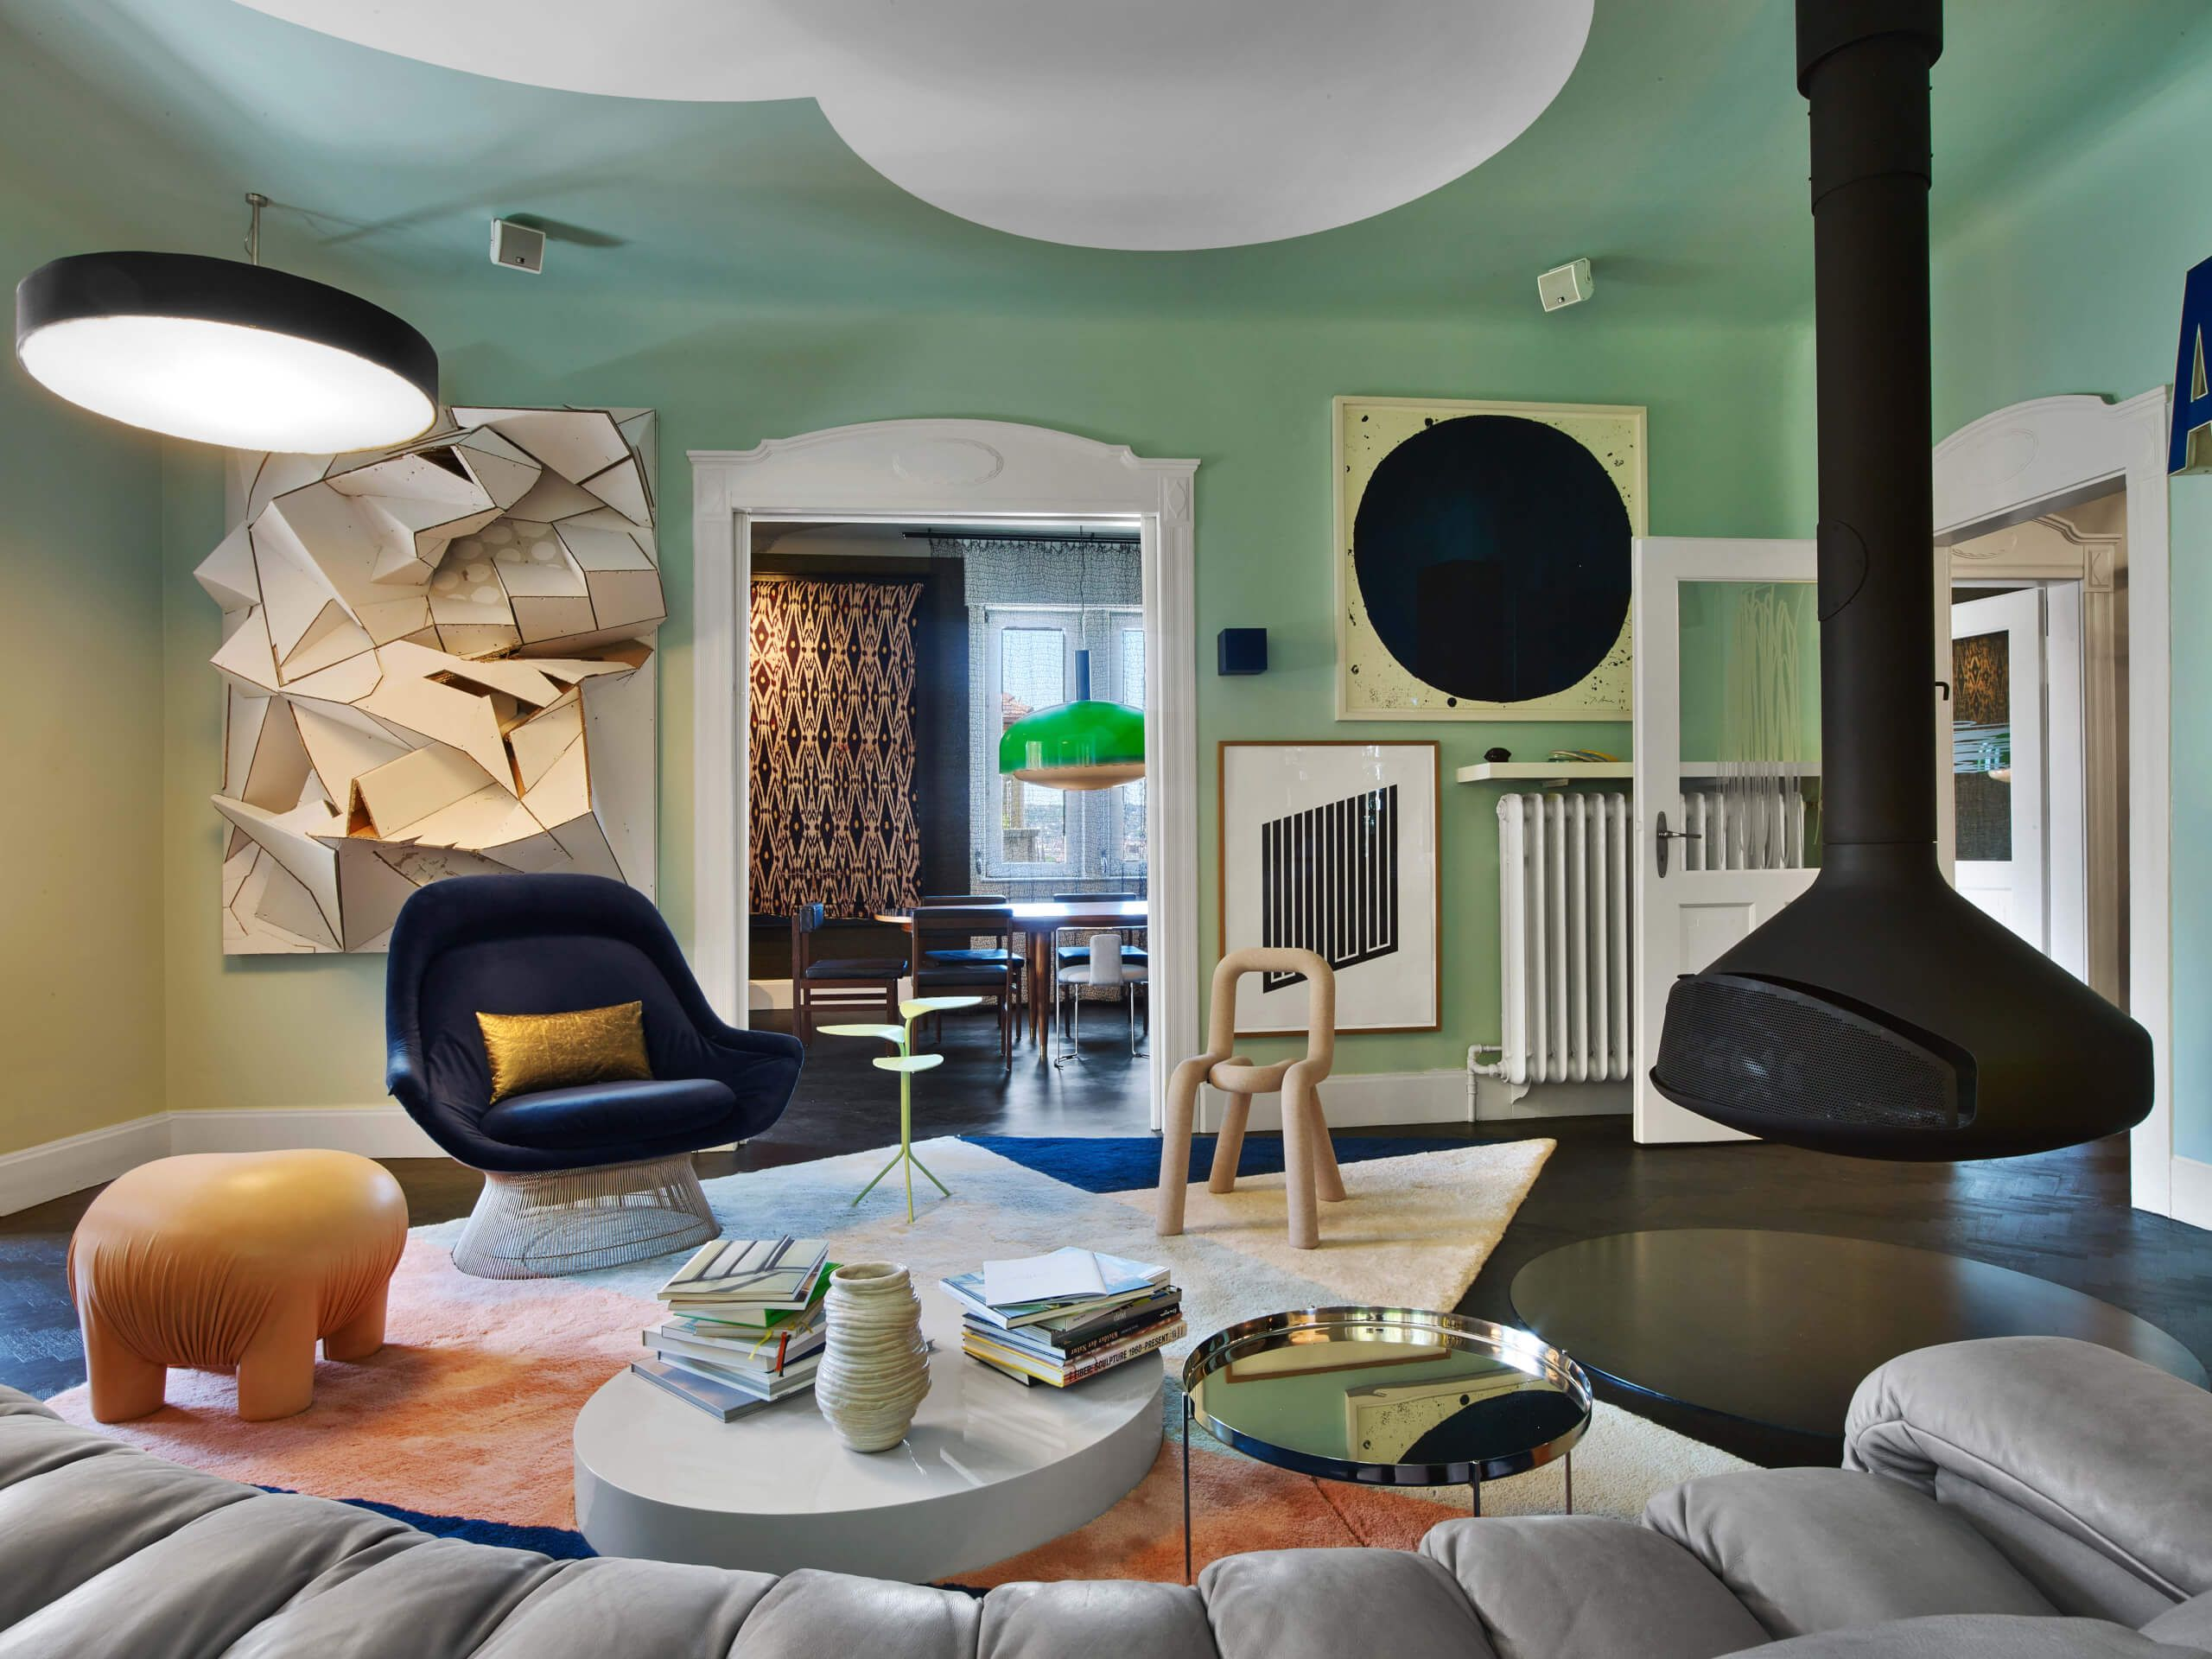 Colorful Eclectic Interior Design Is Collage Of Travels And Memories Eclectic Living Room Design Classic Interior Design Eclectic Interior